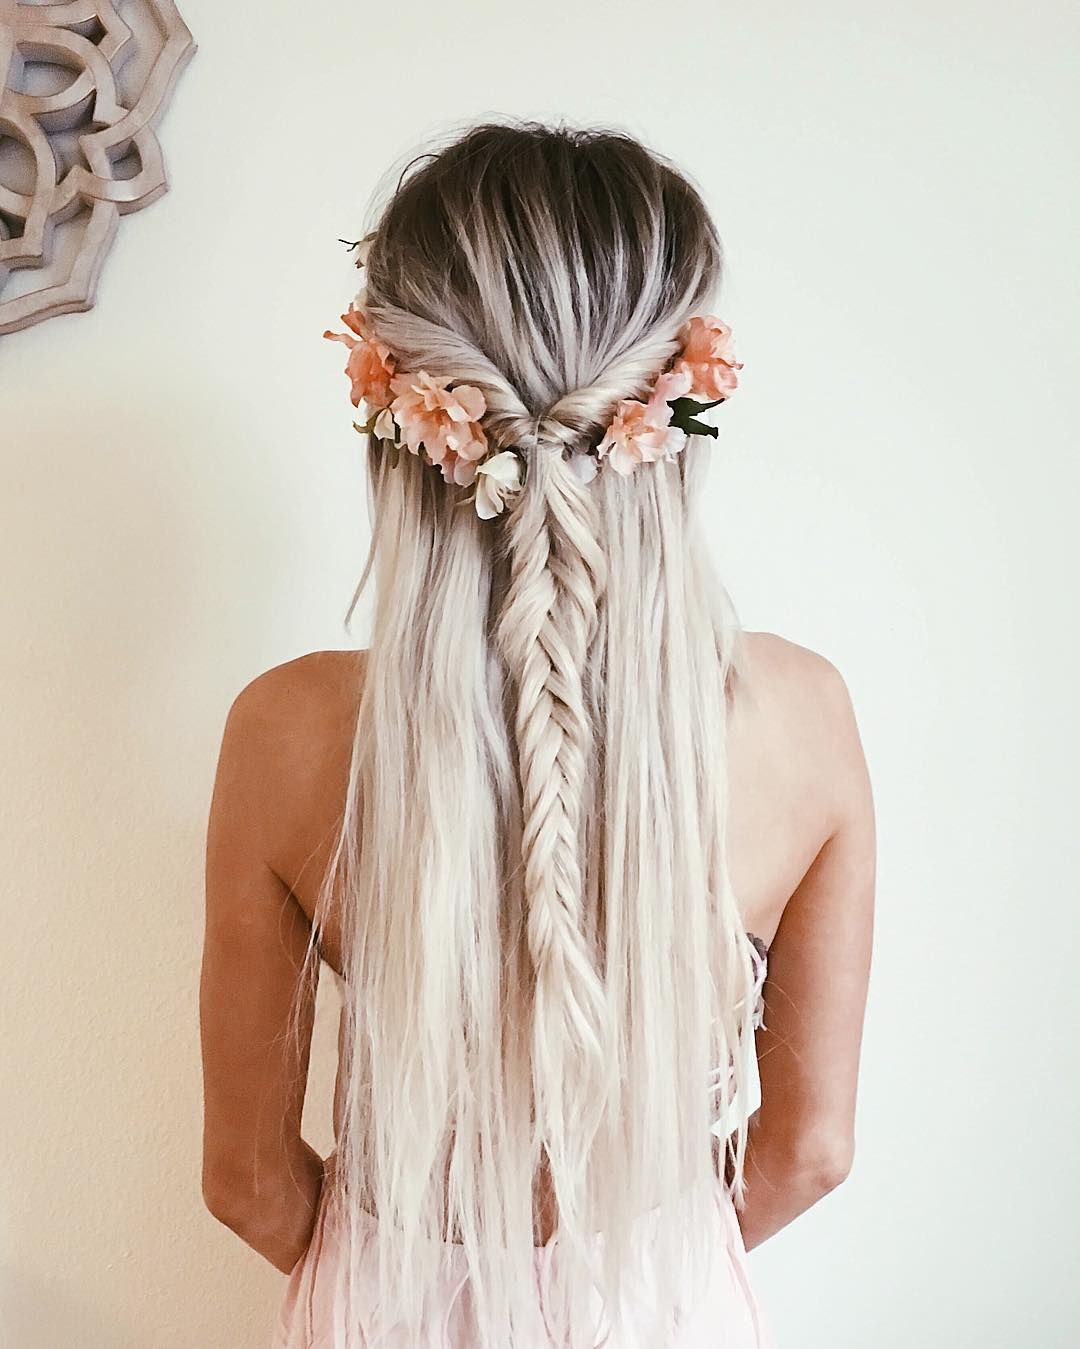 How To Do The Twisted Fishtail - The Trendiest Hairstyle Of The Season - fashionsy.com